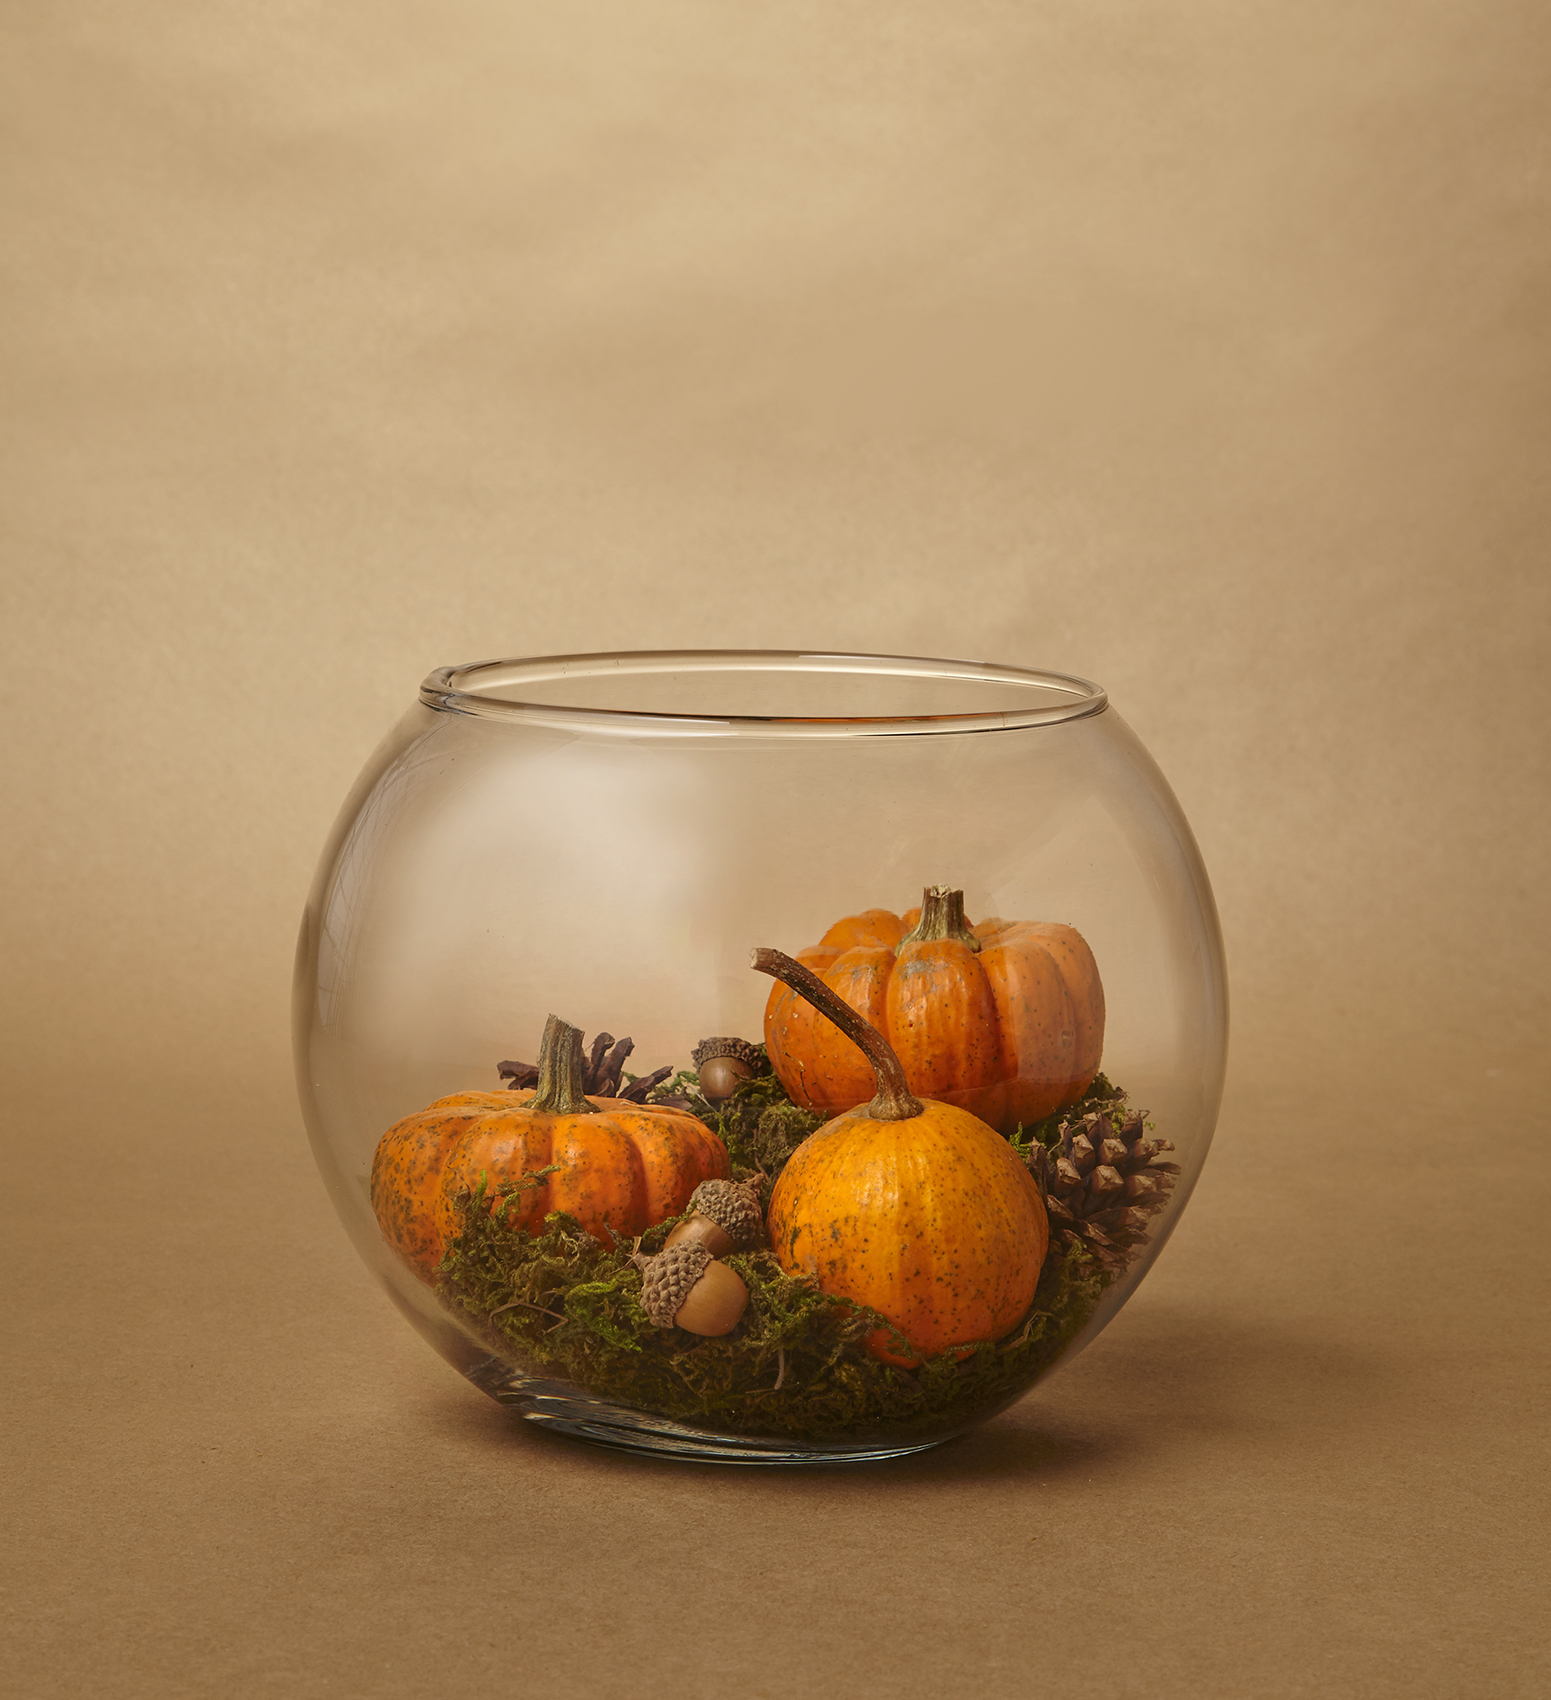 Small Pumpkin Decorations: 8 Easy Pumpkin Centerpieces To Complete Your Fall Table